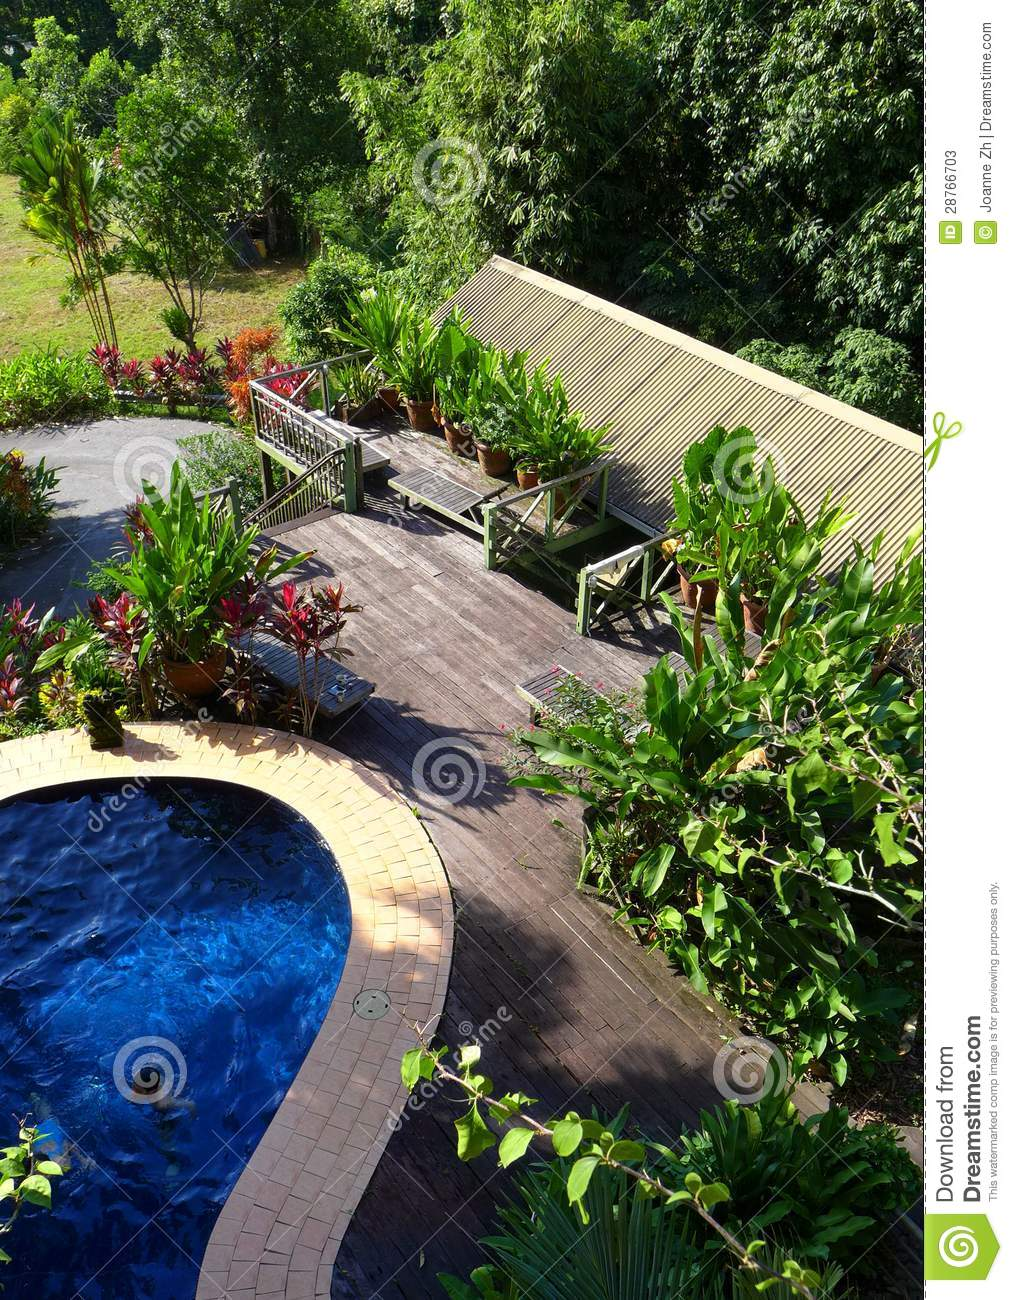 Outstanding Wood Patio Deck with Pool 1013 x 1300 · 302 kB · jpeg